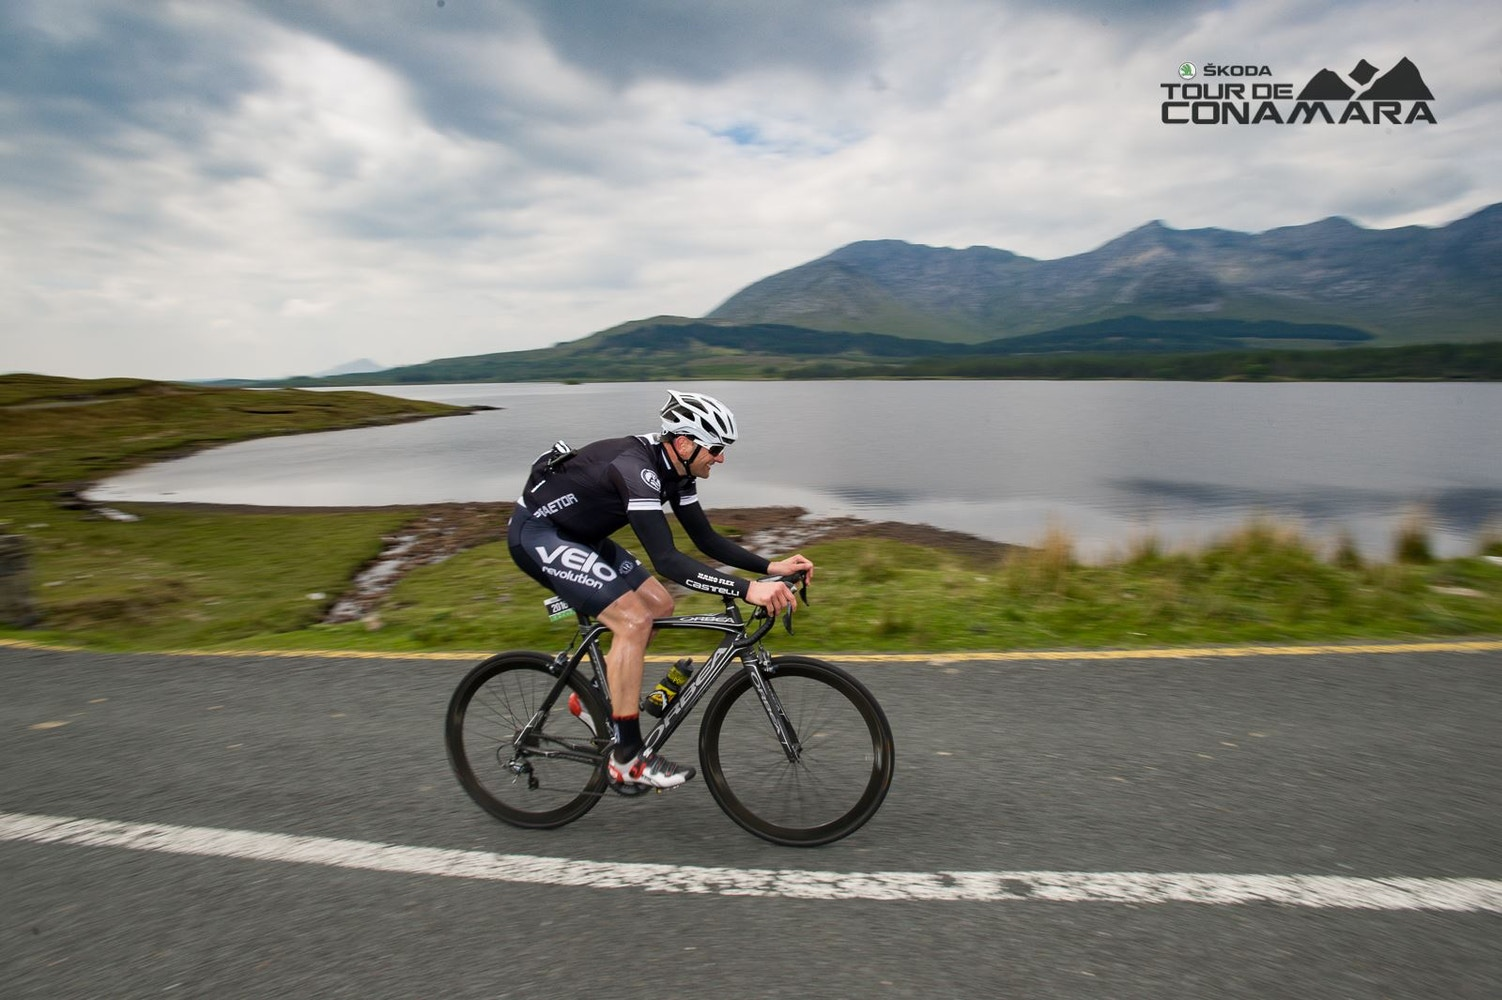 Skoda Tour de Conamara Training Tips from Brian Nevin